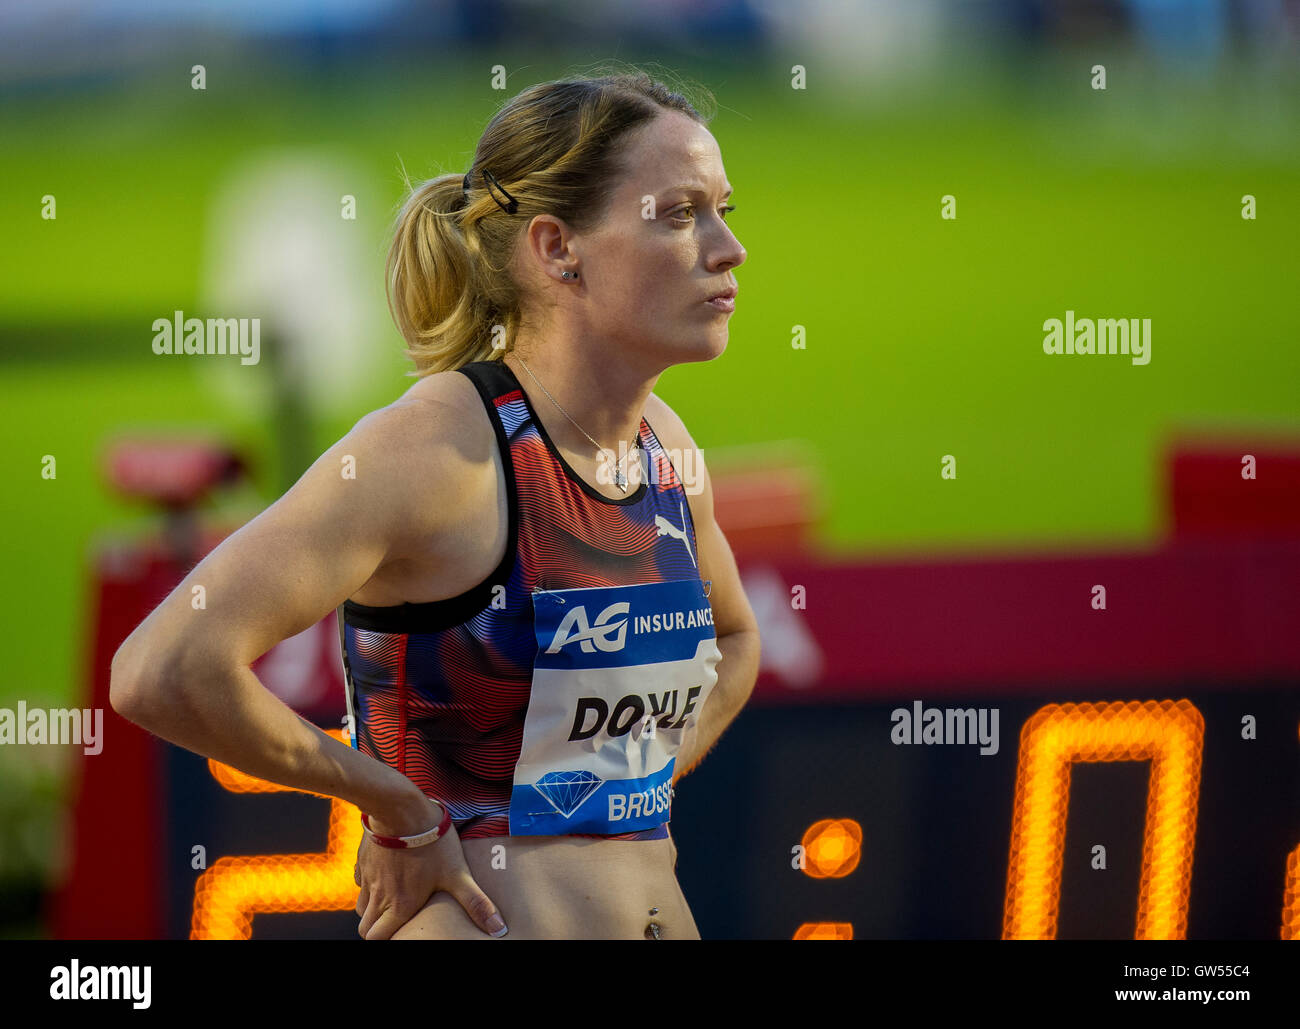 BRUSSELS, BELGIUM - SEPTEMBER 9:  Eilidh Doyle competing in the Women's 400m Hurdles at the AG Insurance Memorial - Stock Image